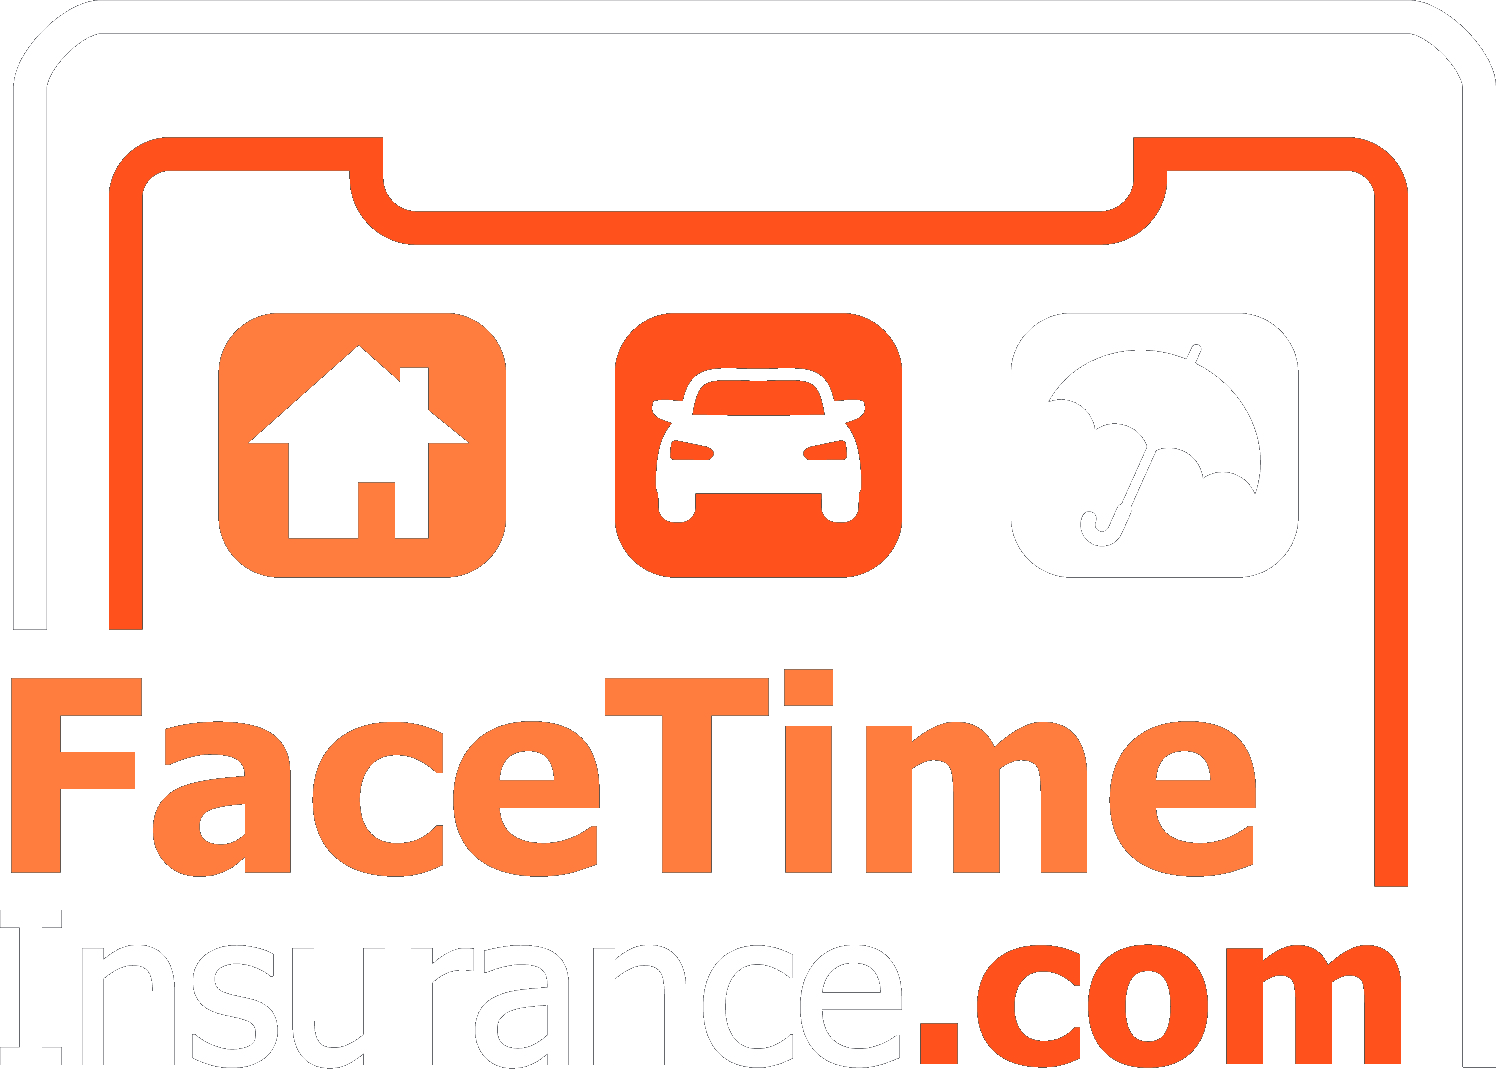 Facetime Insurance – Insurance Connection Agency Logo